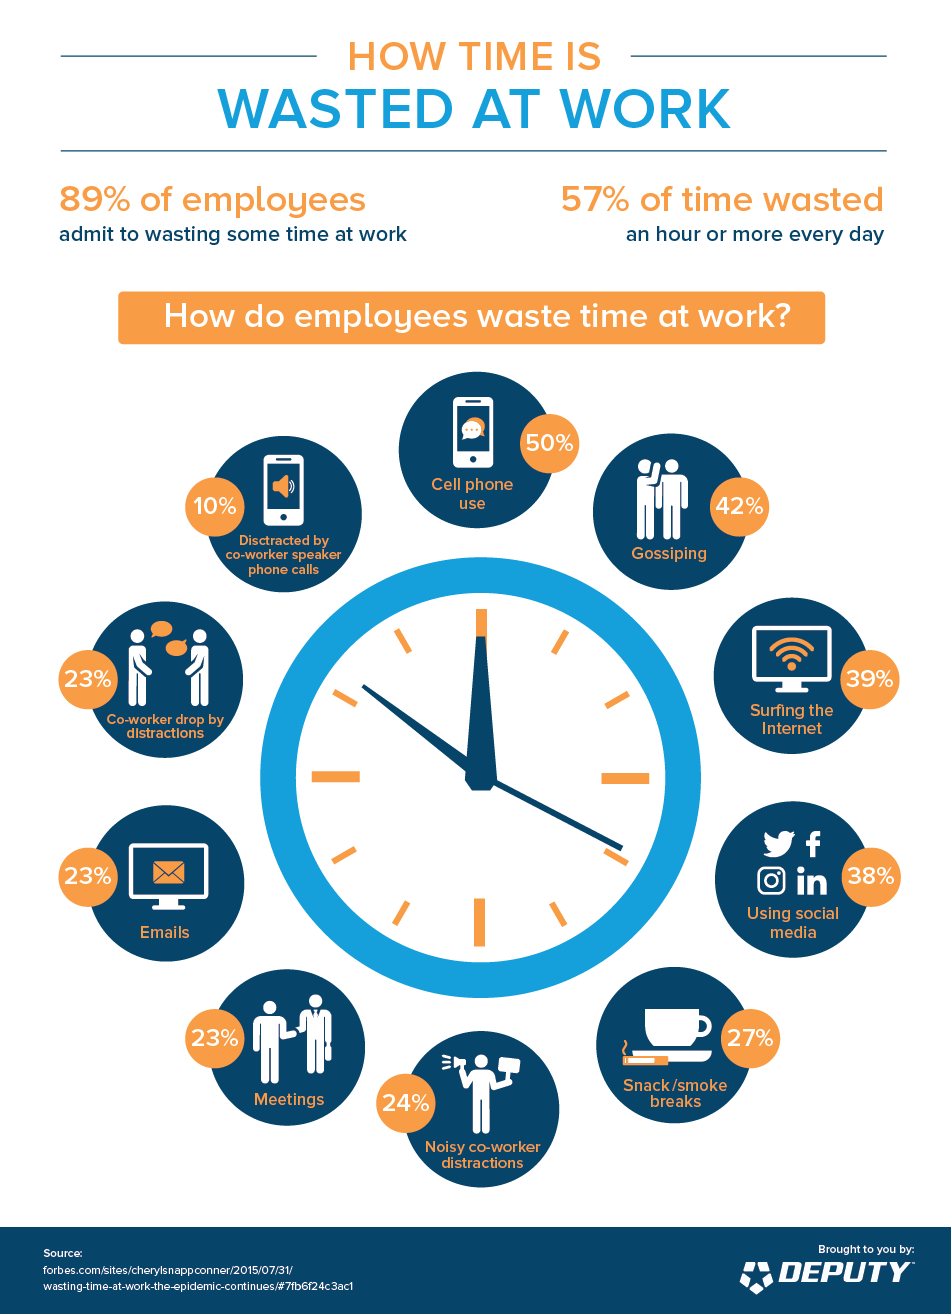 Deputy-How Time is Wasted at Work infographic (1)